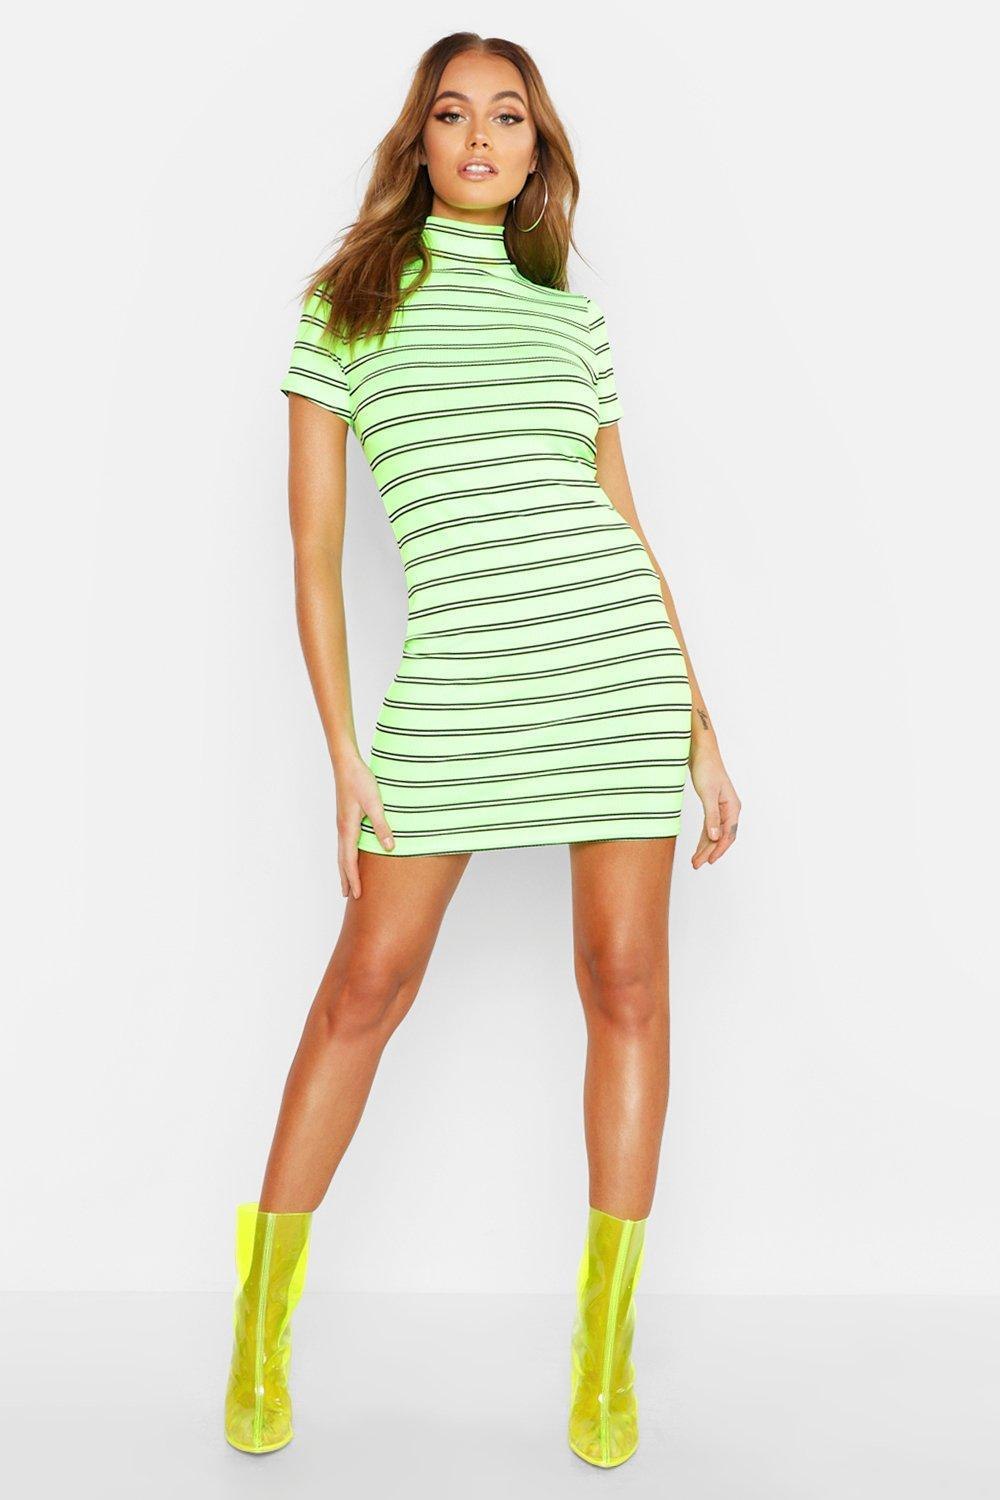 Boohoo ribbed bodycon dress with high neck in neon green